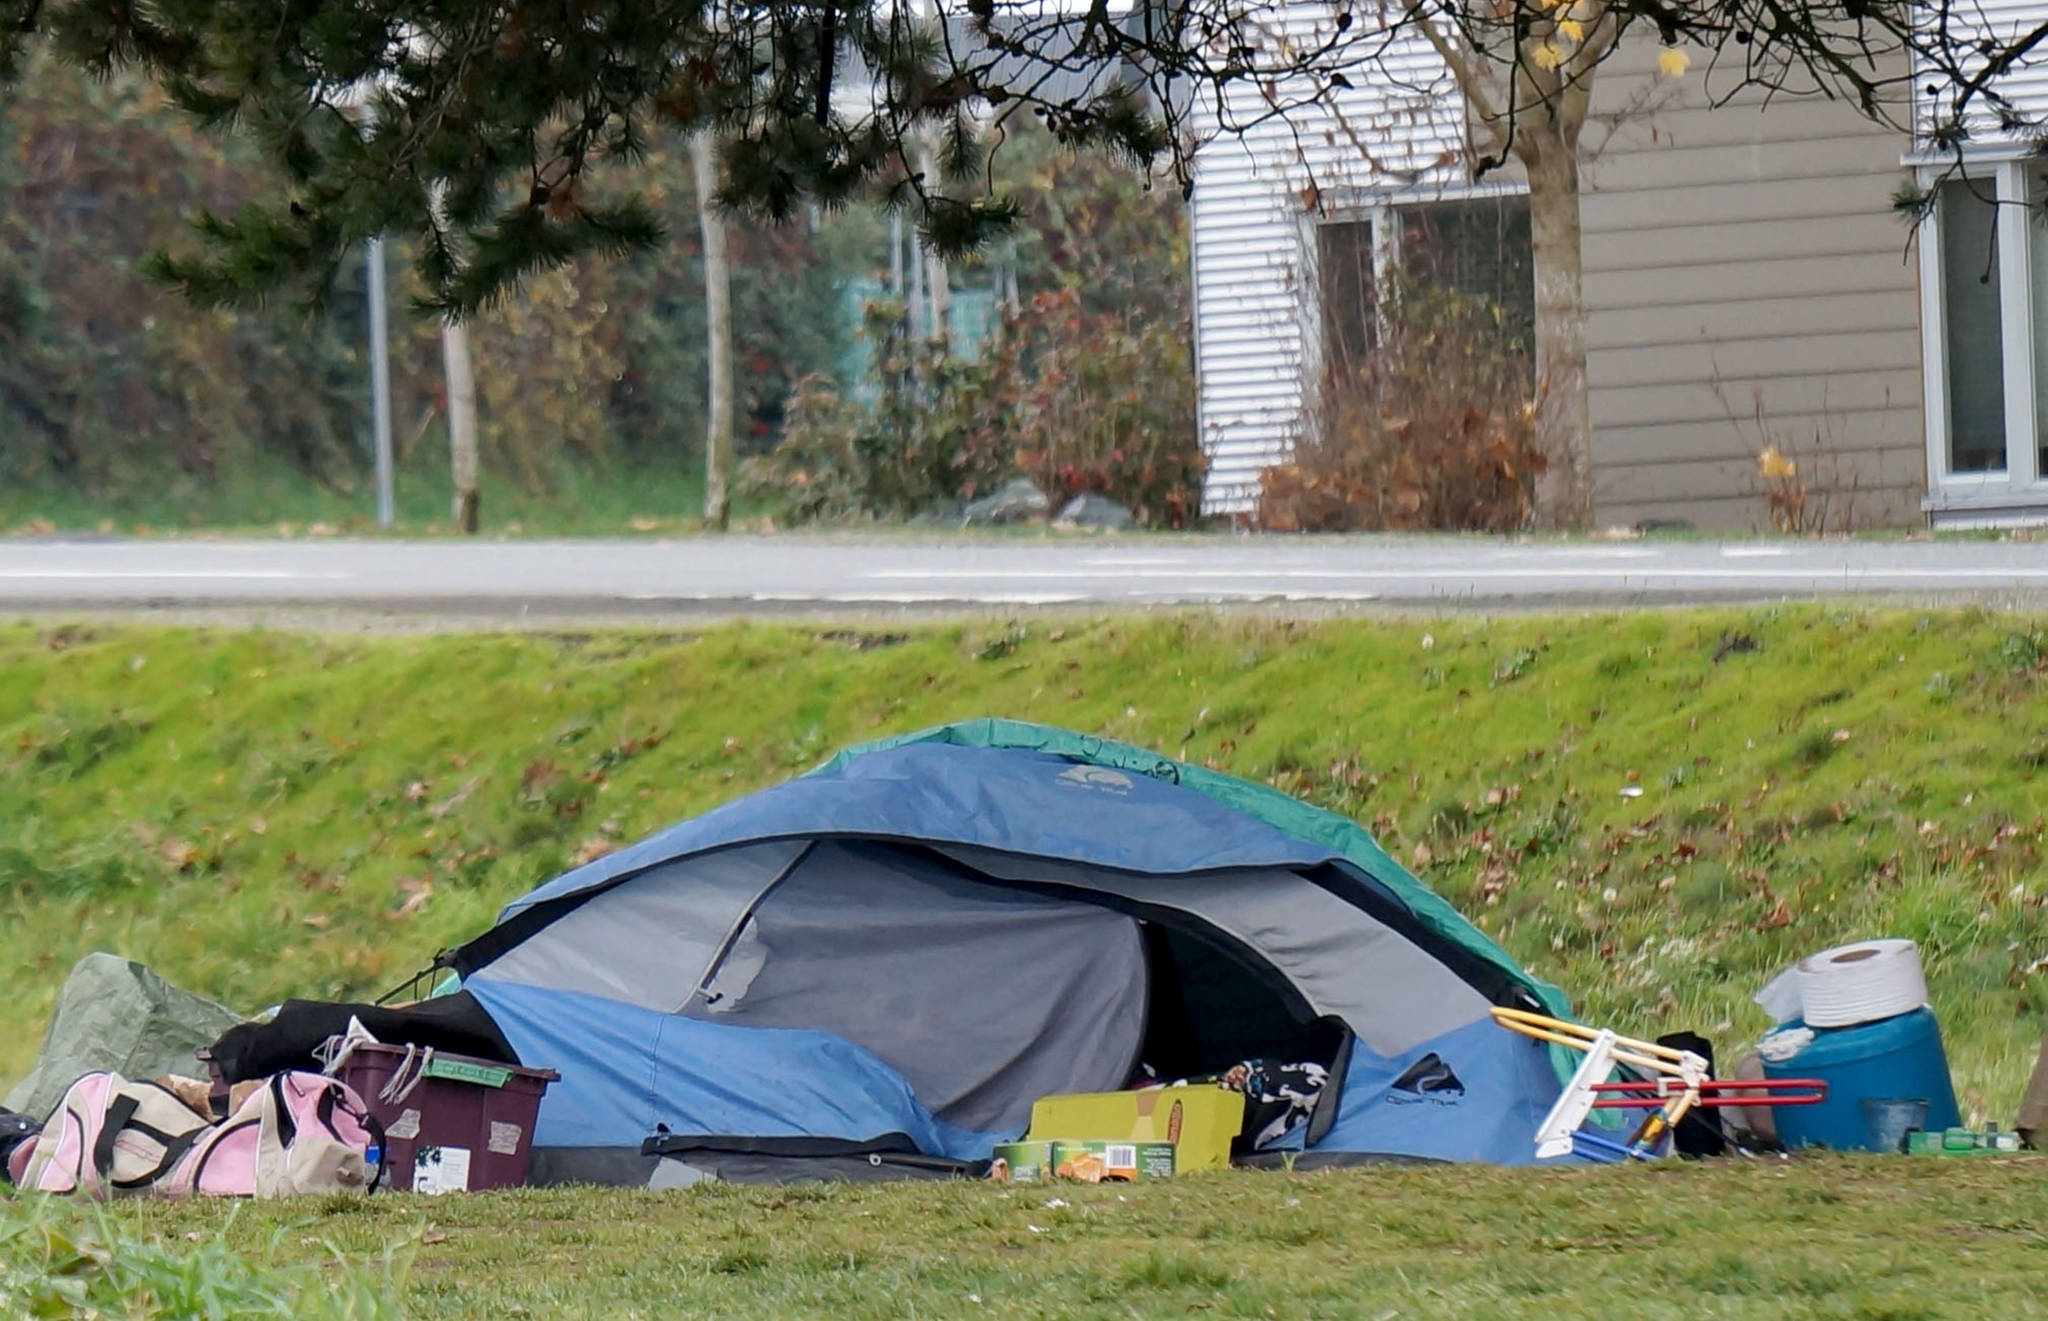 B.C. VIEWS: Don't let anger over homelessness get in the way